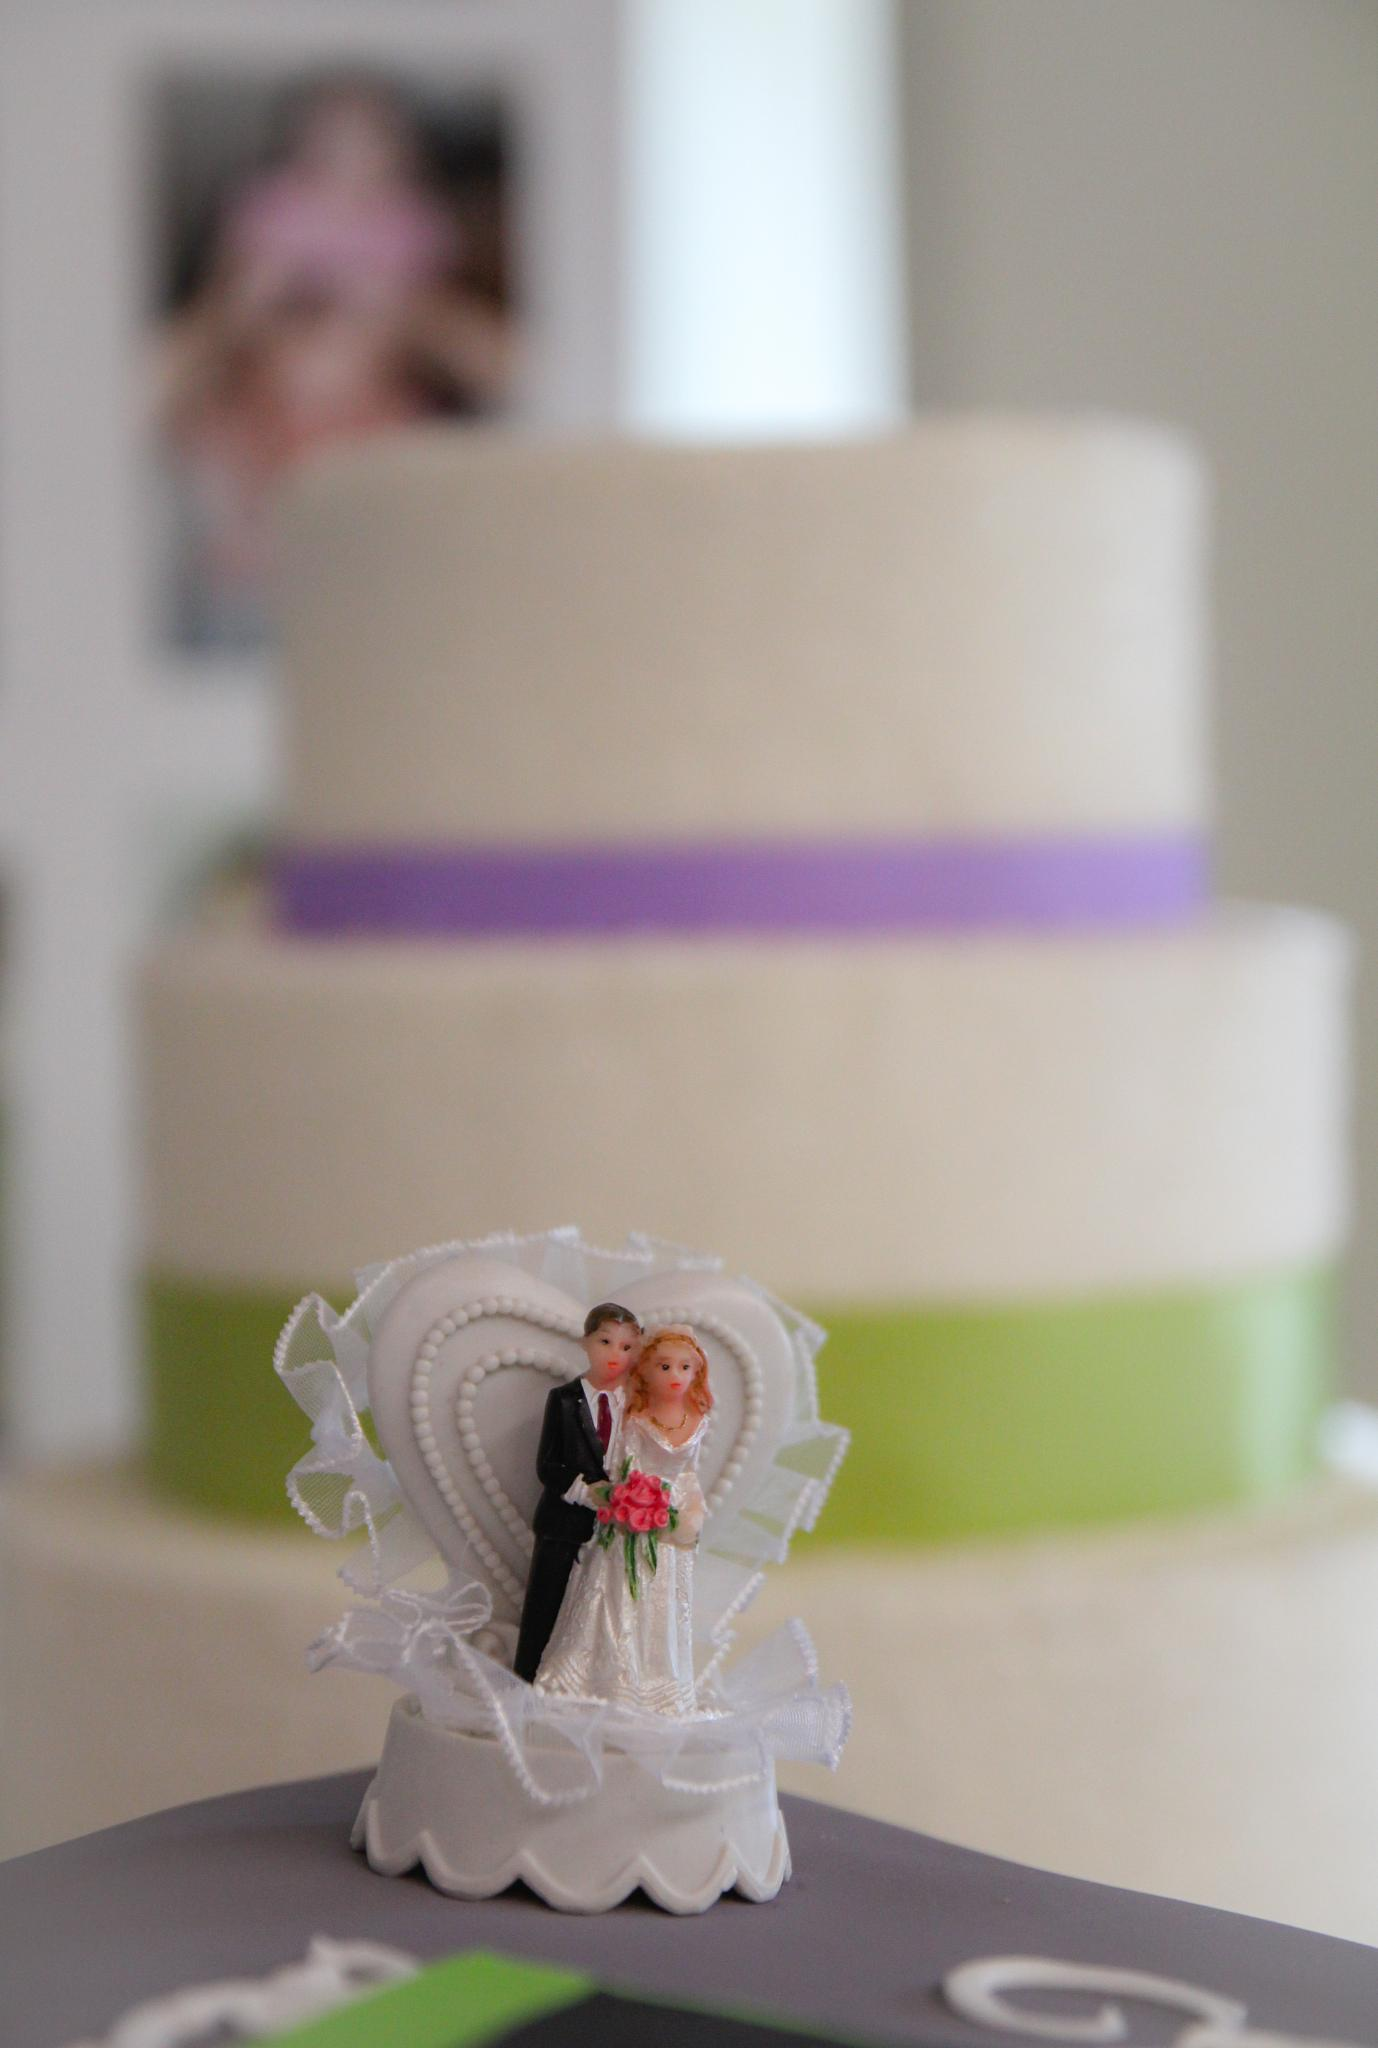 Bride and Groom Cake by Tina Paris